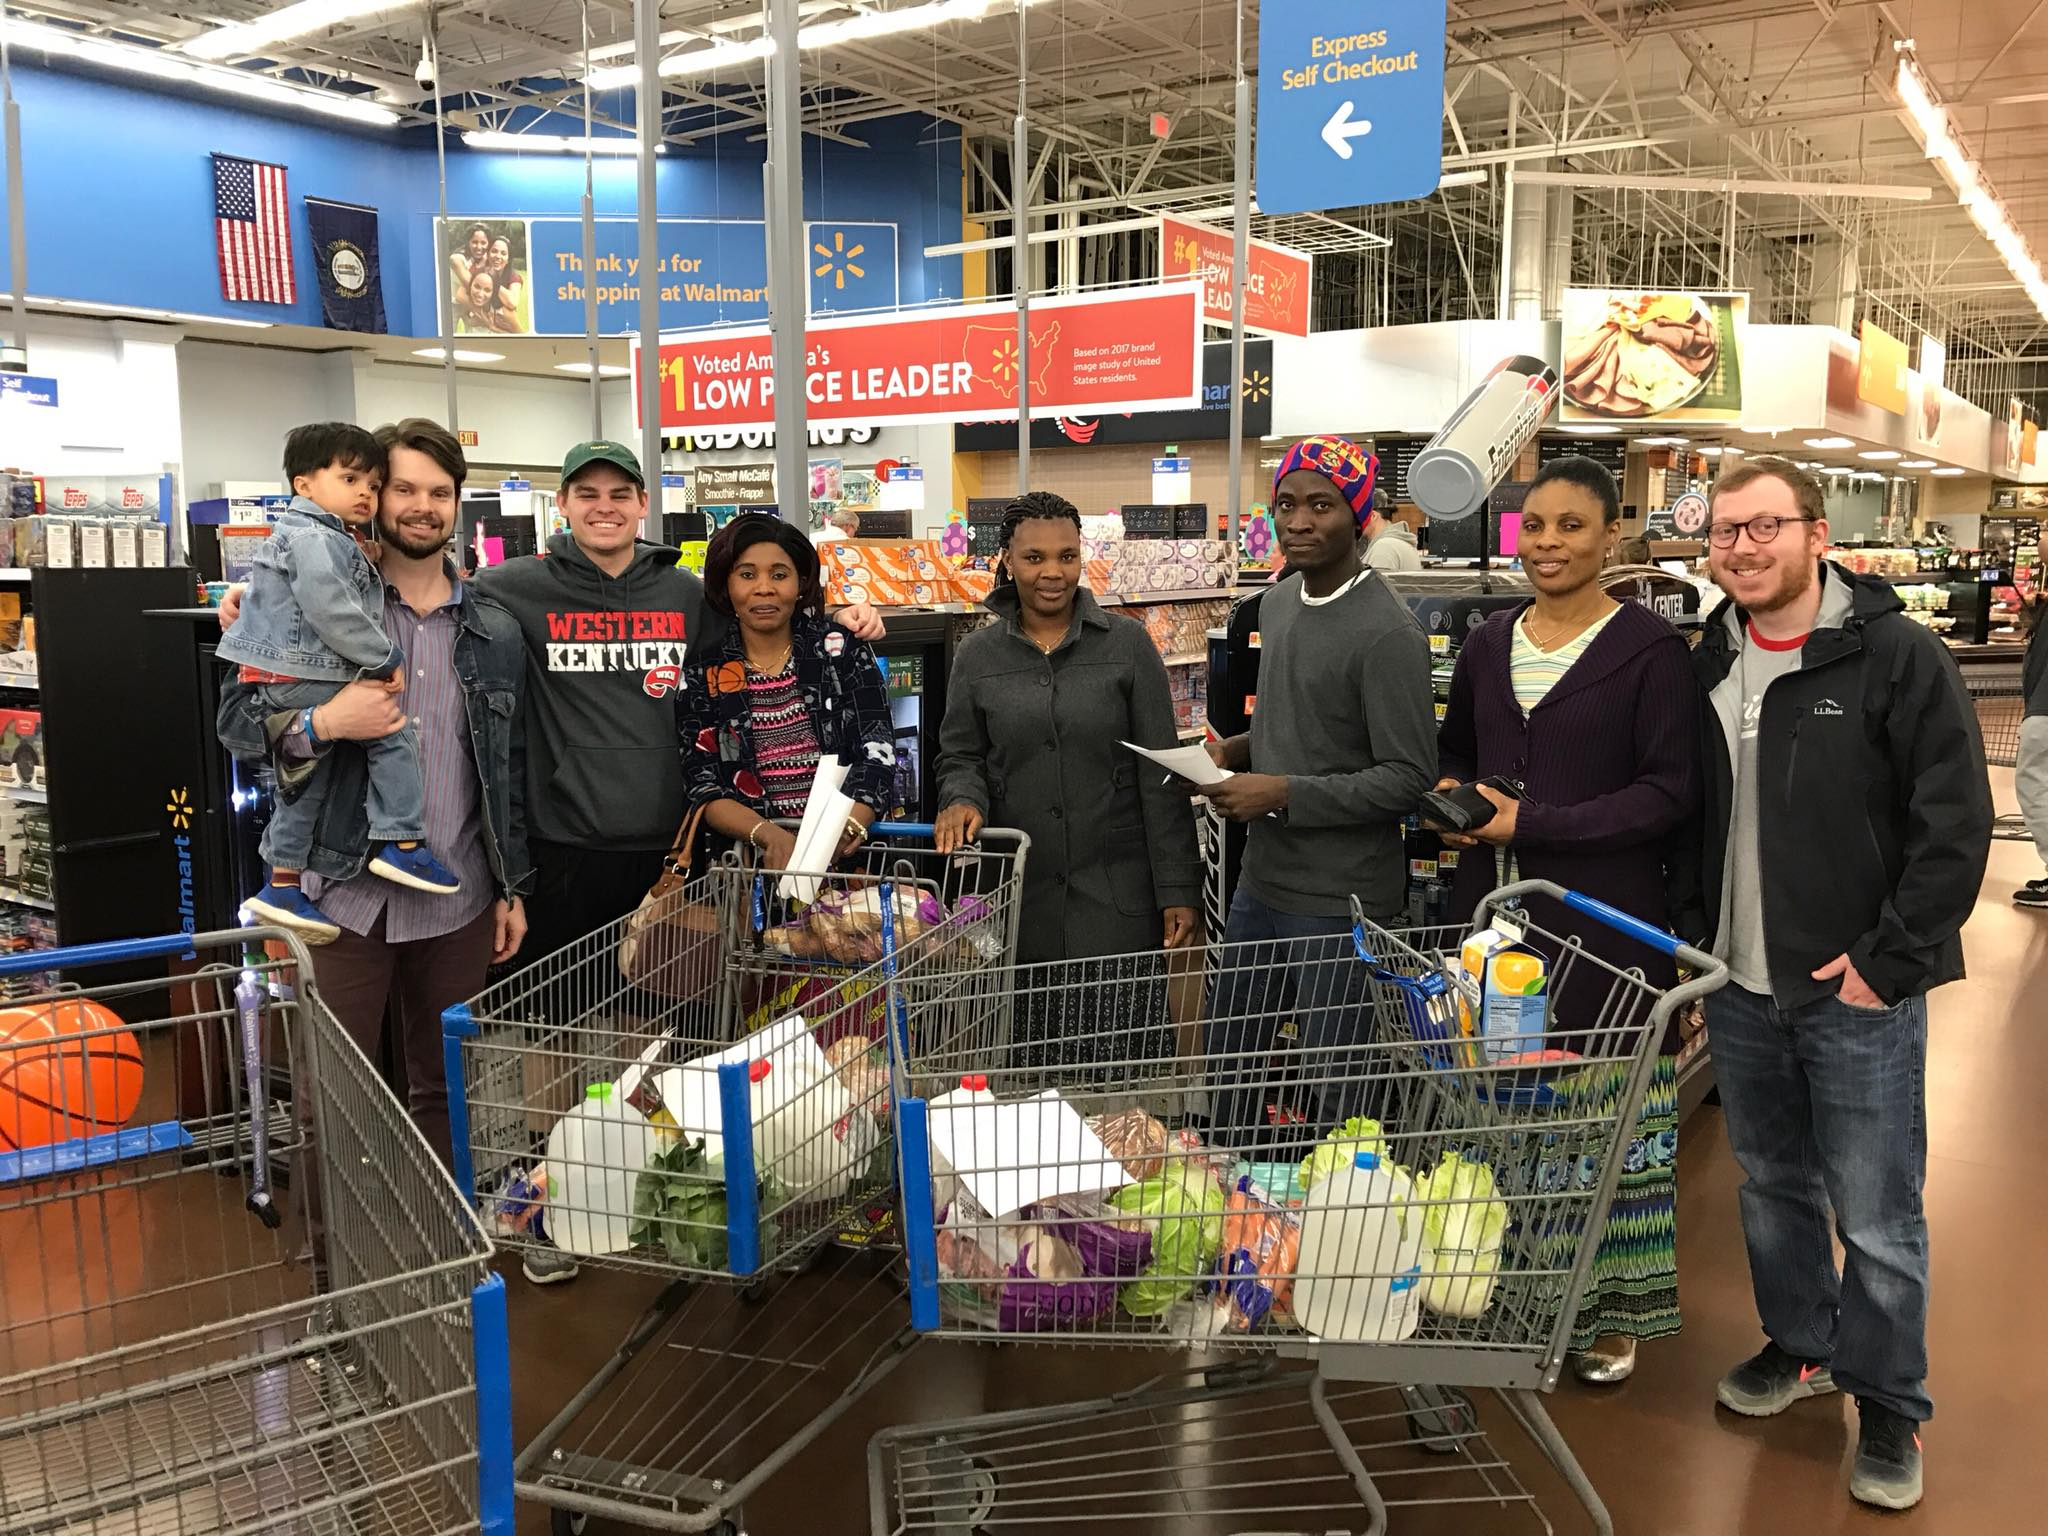 The last English class of the second session finished up on February 25 with a grocery store scavenger hunt. Classes will start again on March 18, and everyone is welcome!